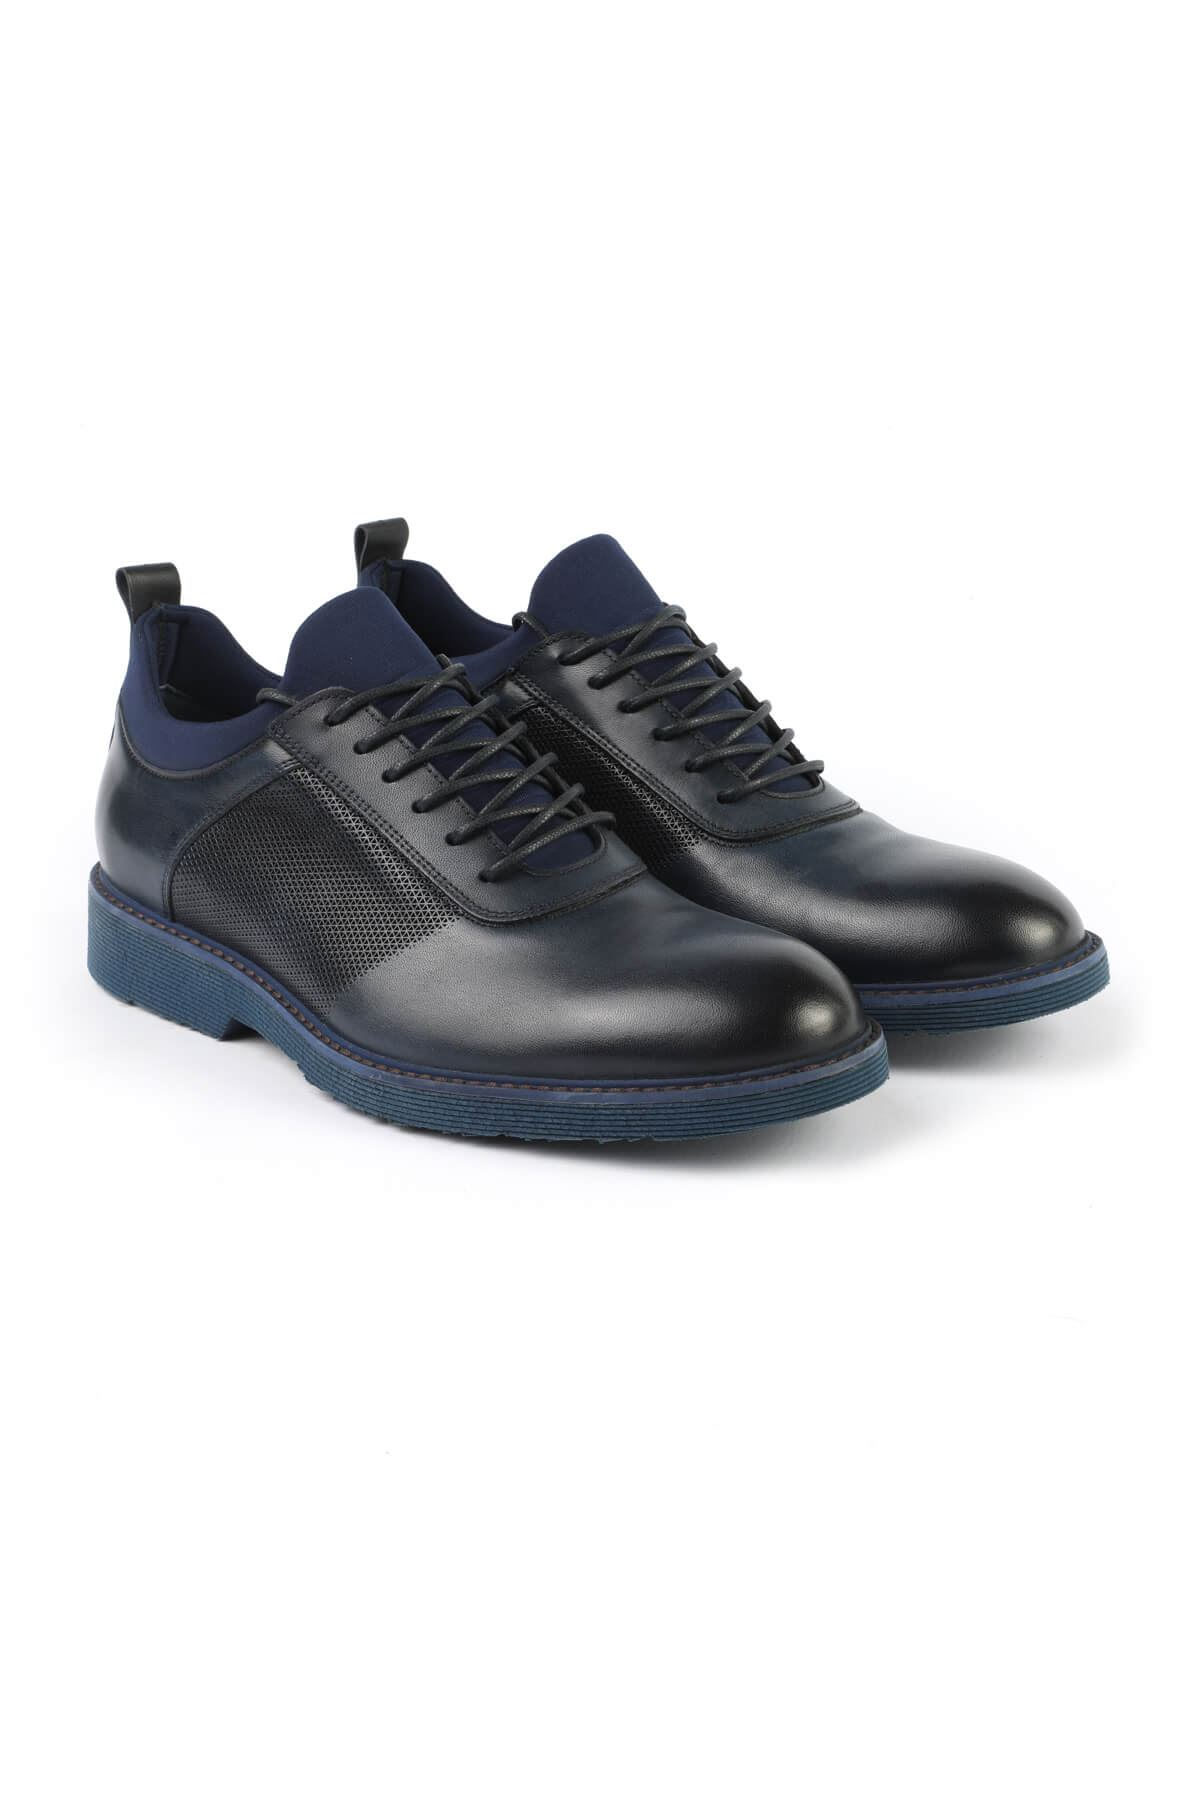 Libero 2999 Navy Blue Casual Shoes